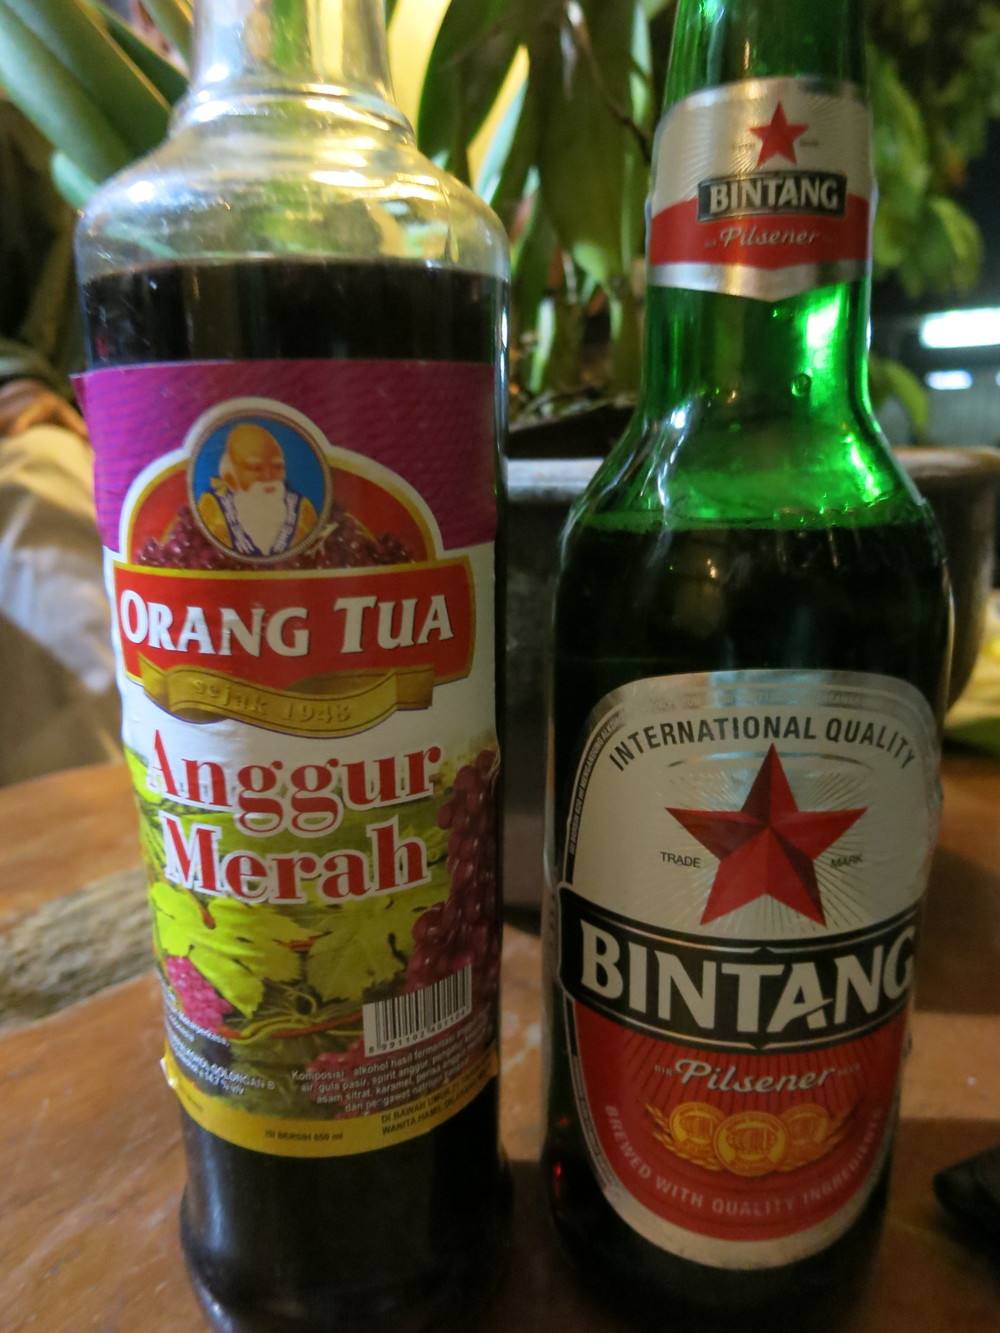 Bintang + Wine??  Sure!  Never try, never know.